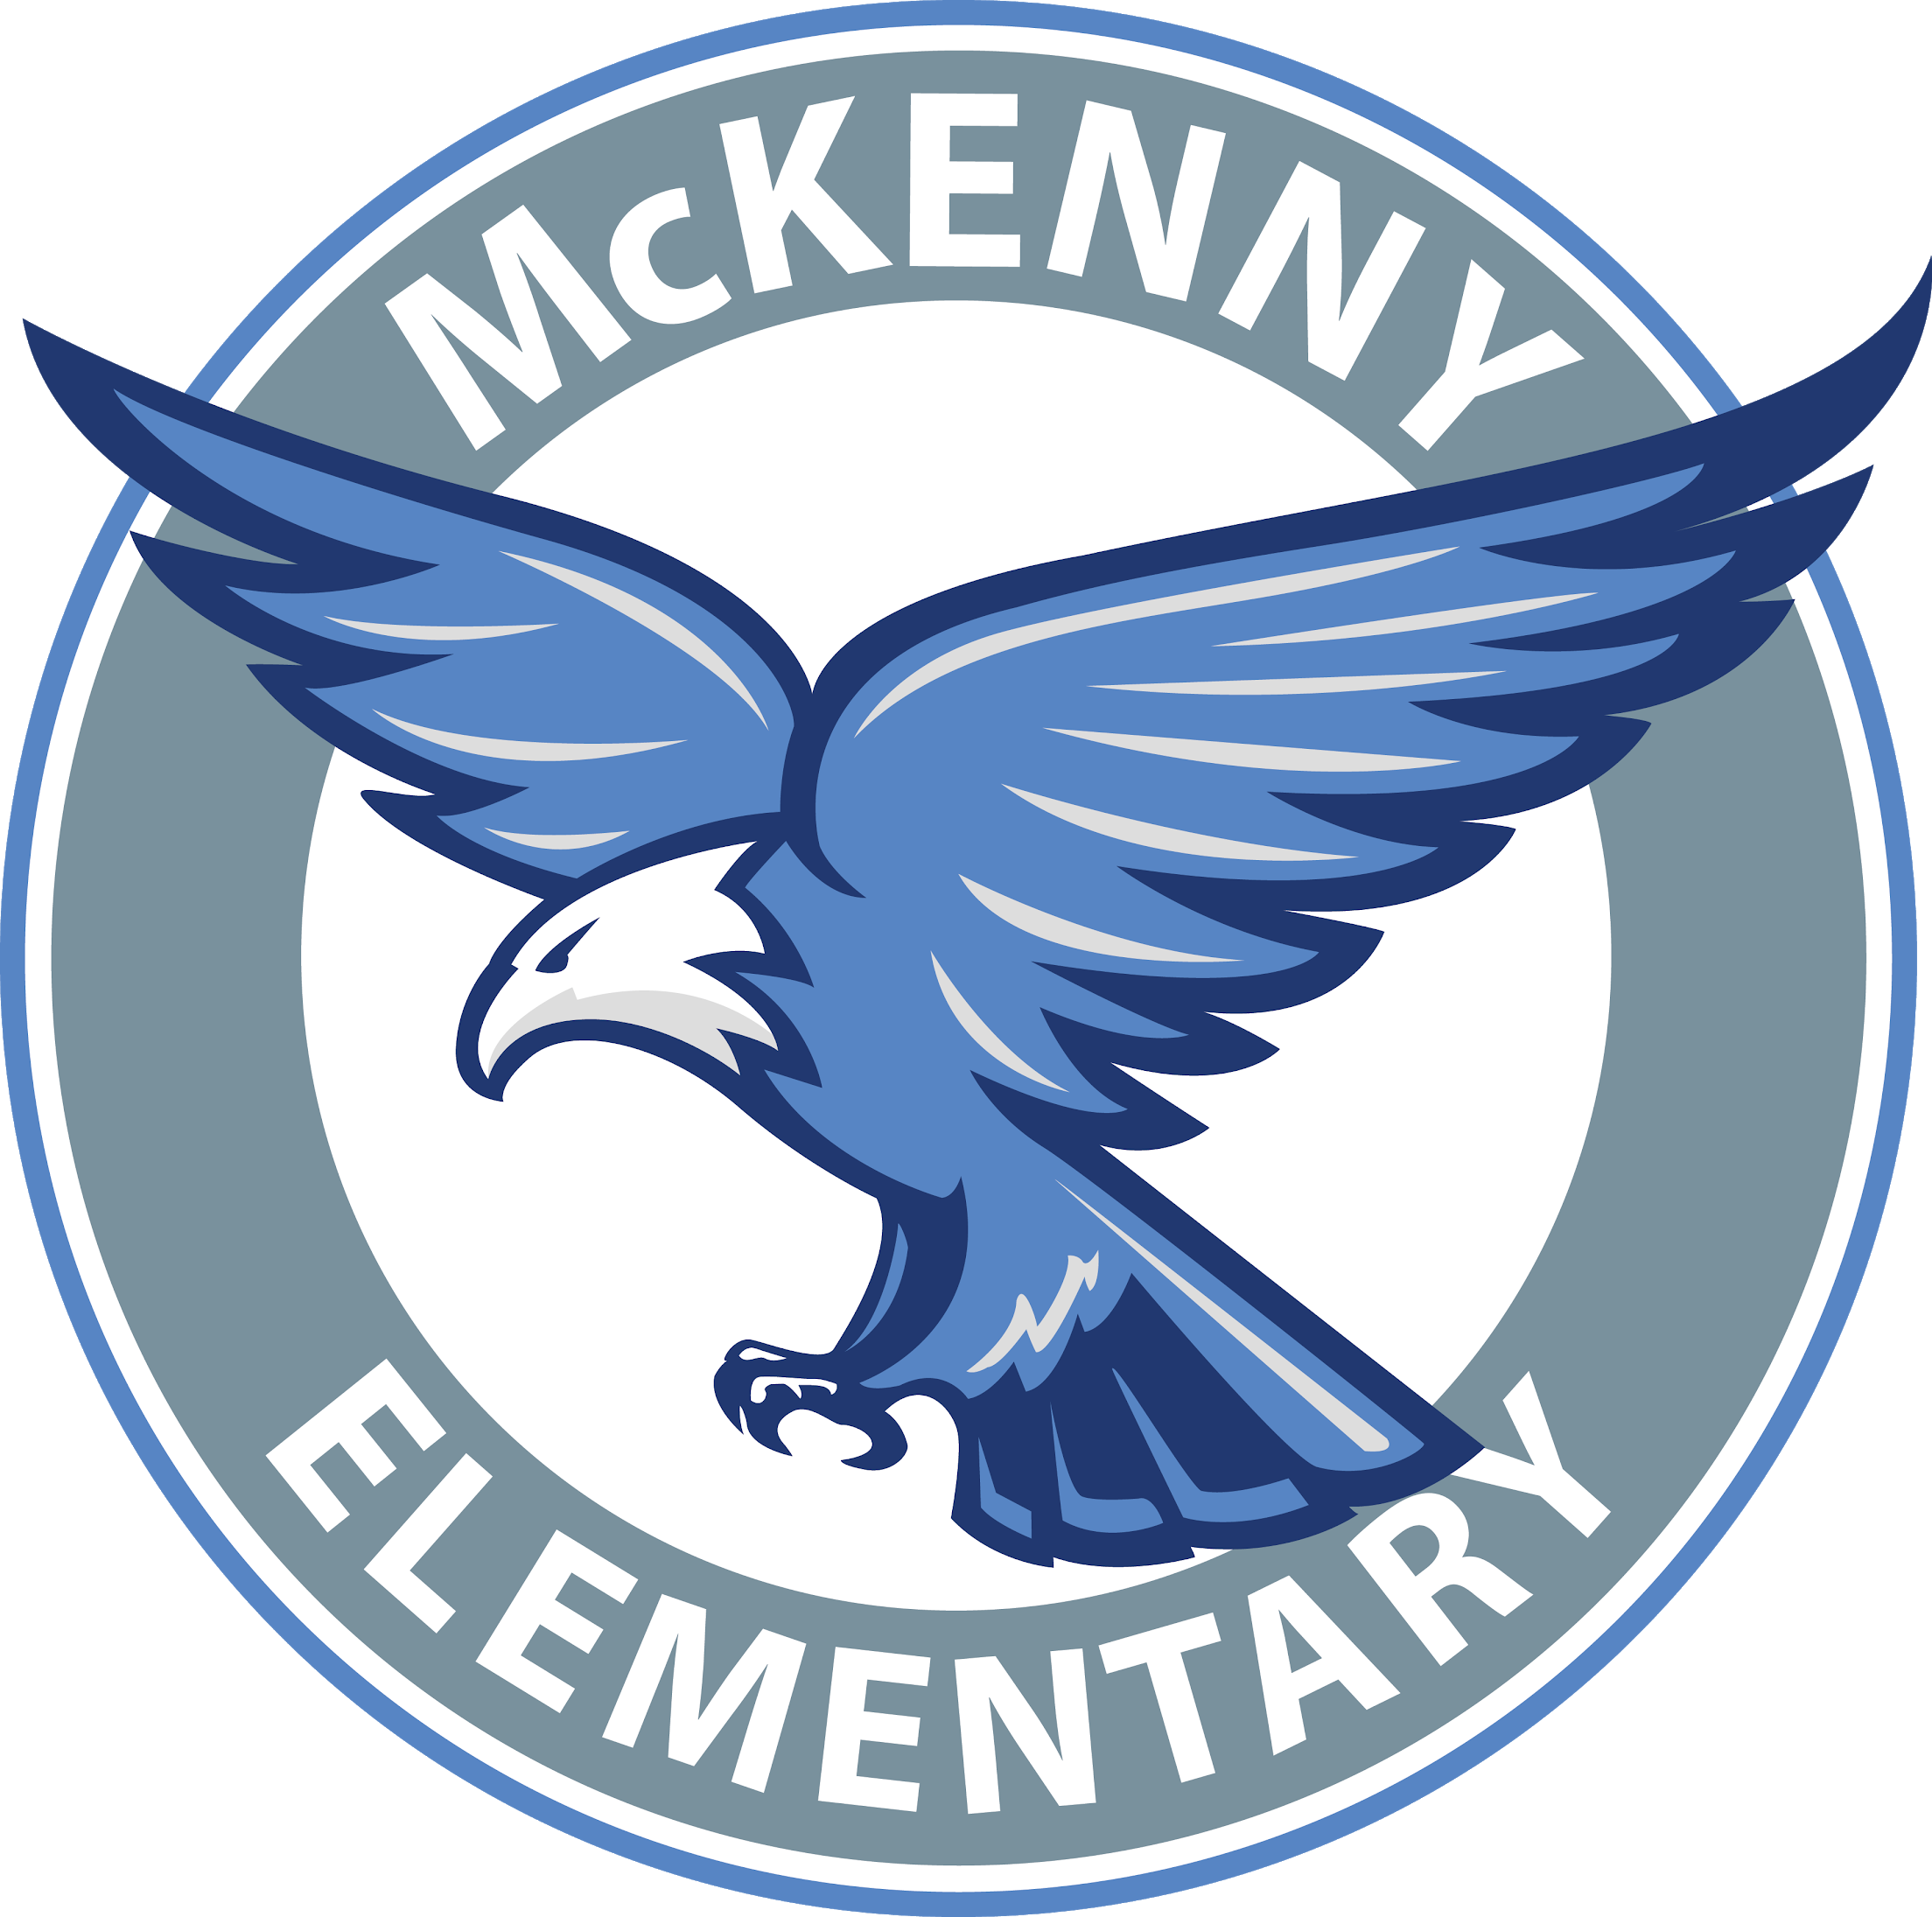 Mckenny Parent Teacher Association